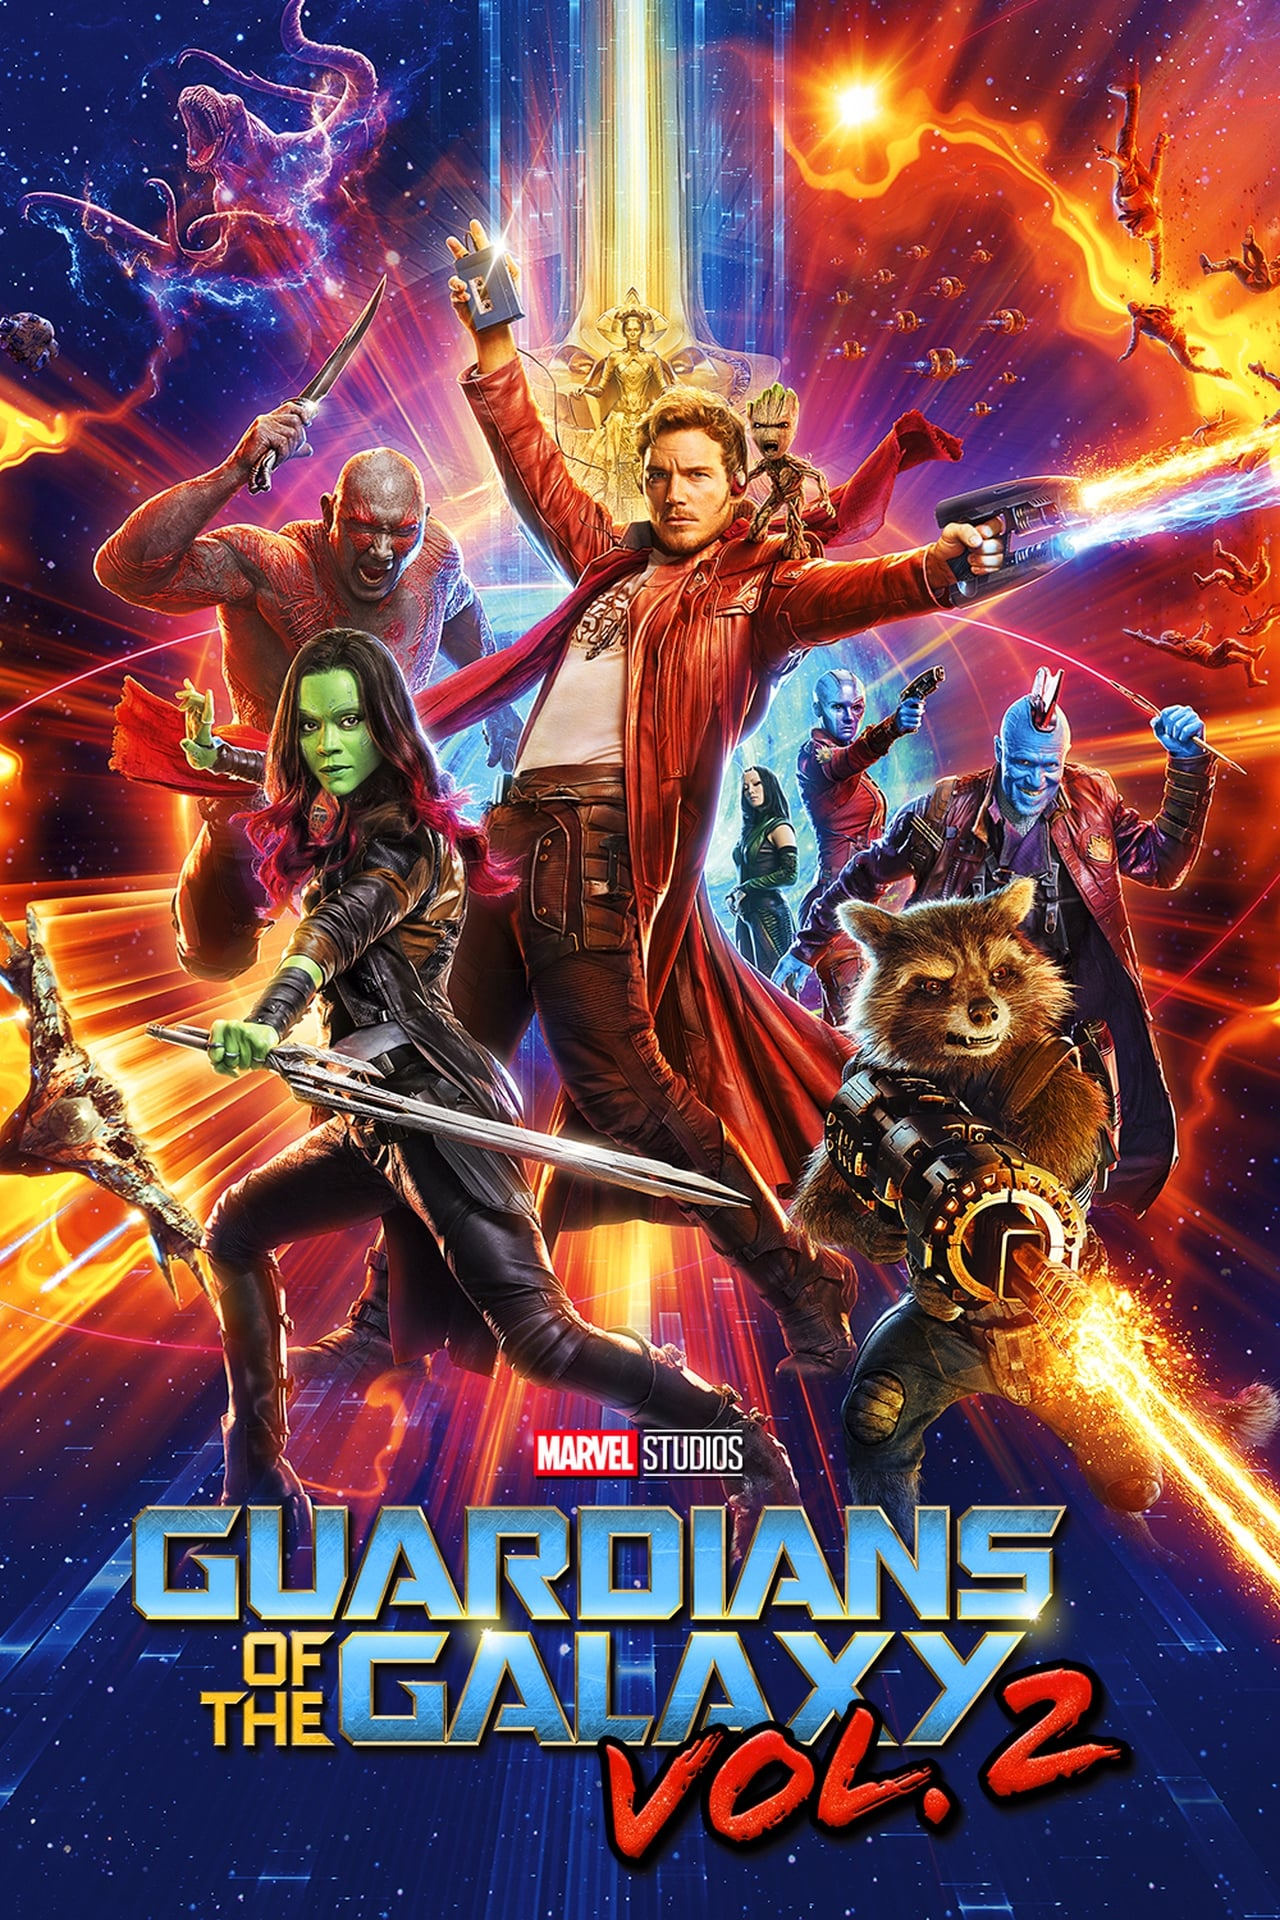 24 Movie Online Streaming Full Movie Guardians Of The Galaxy Vol 2 2017 Online